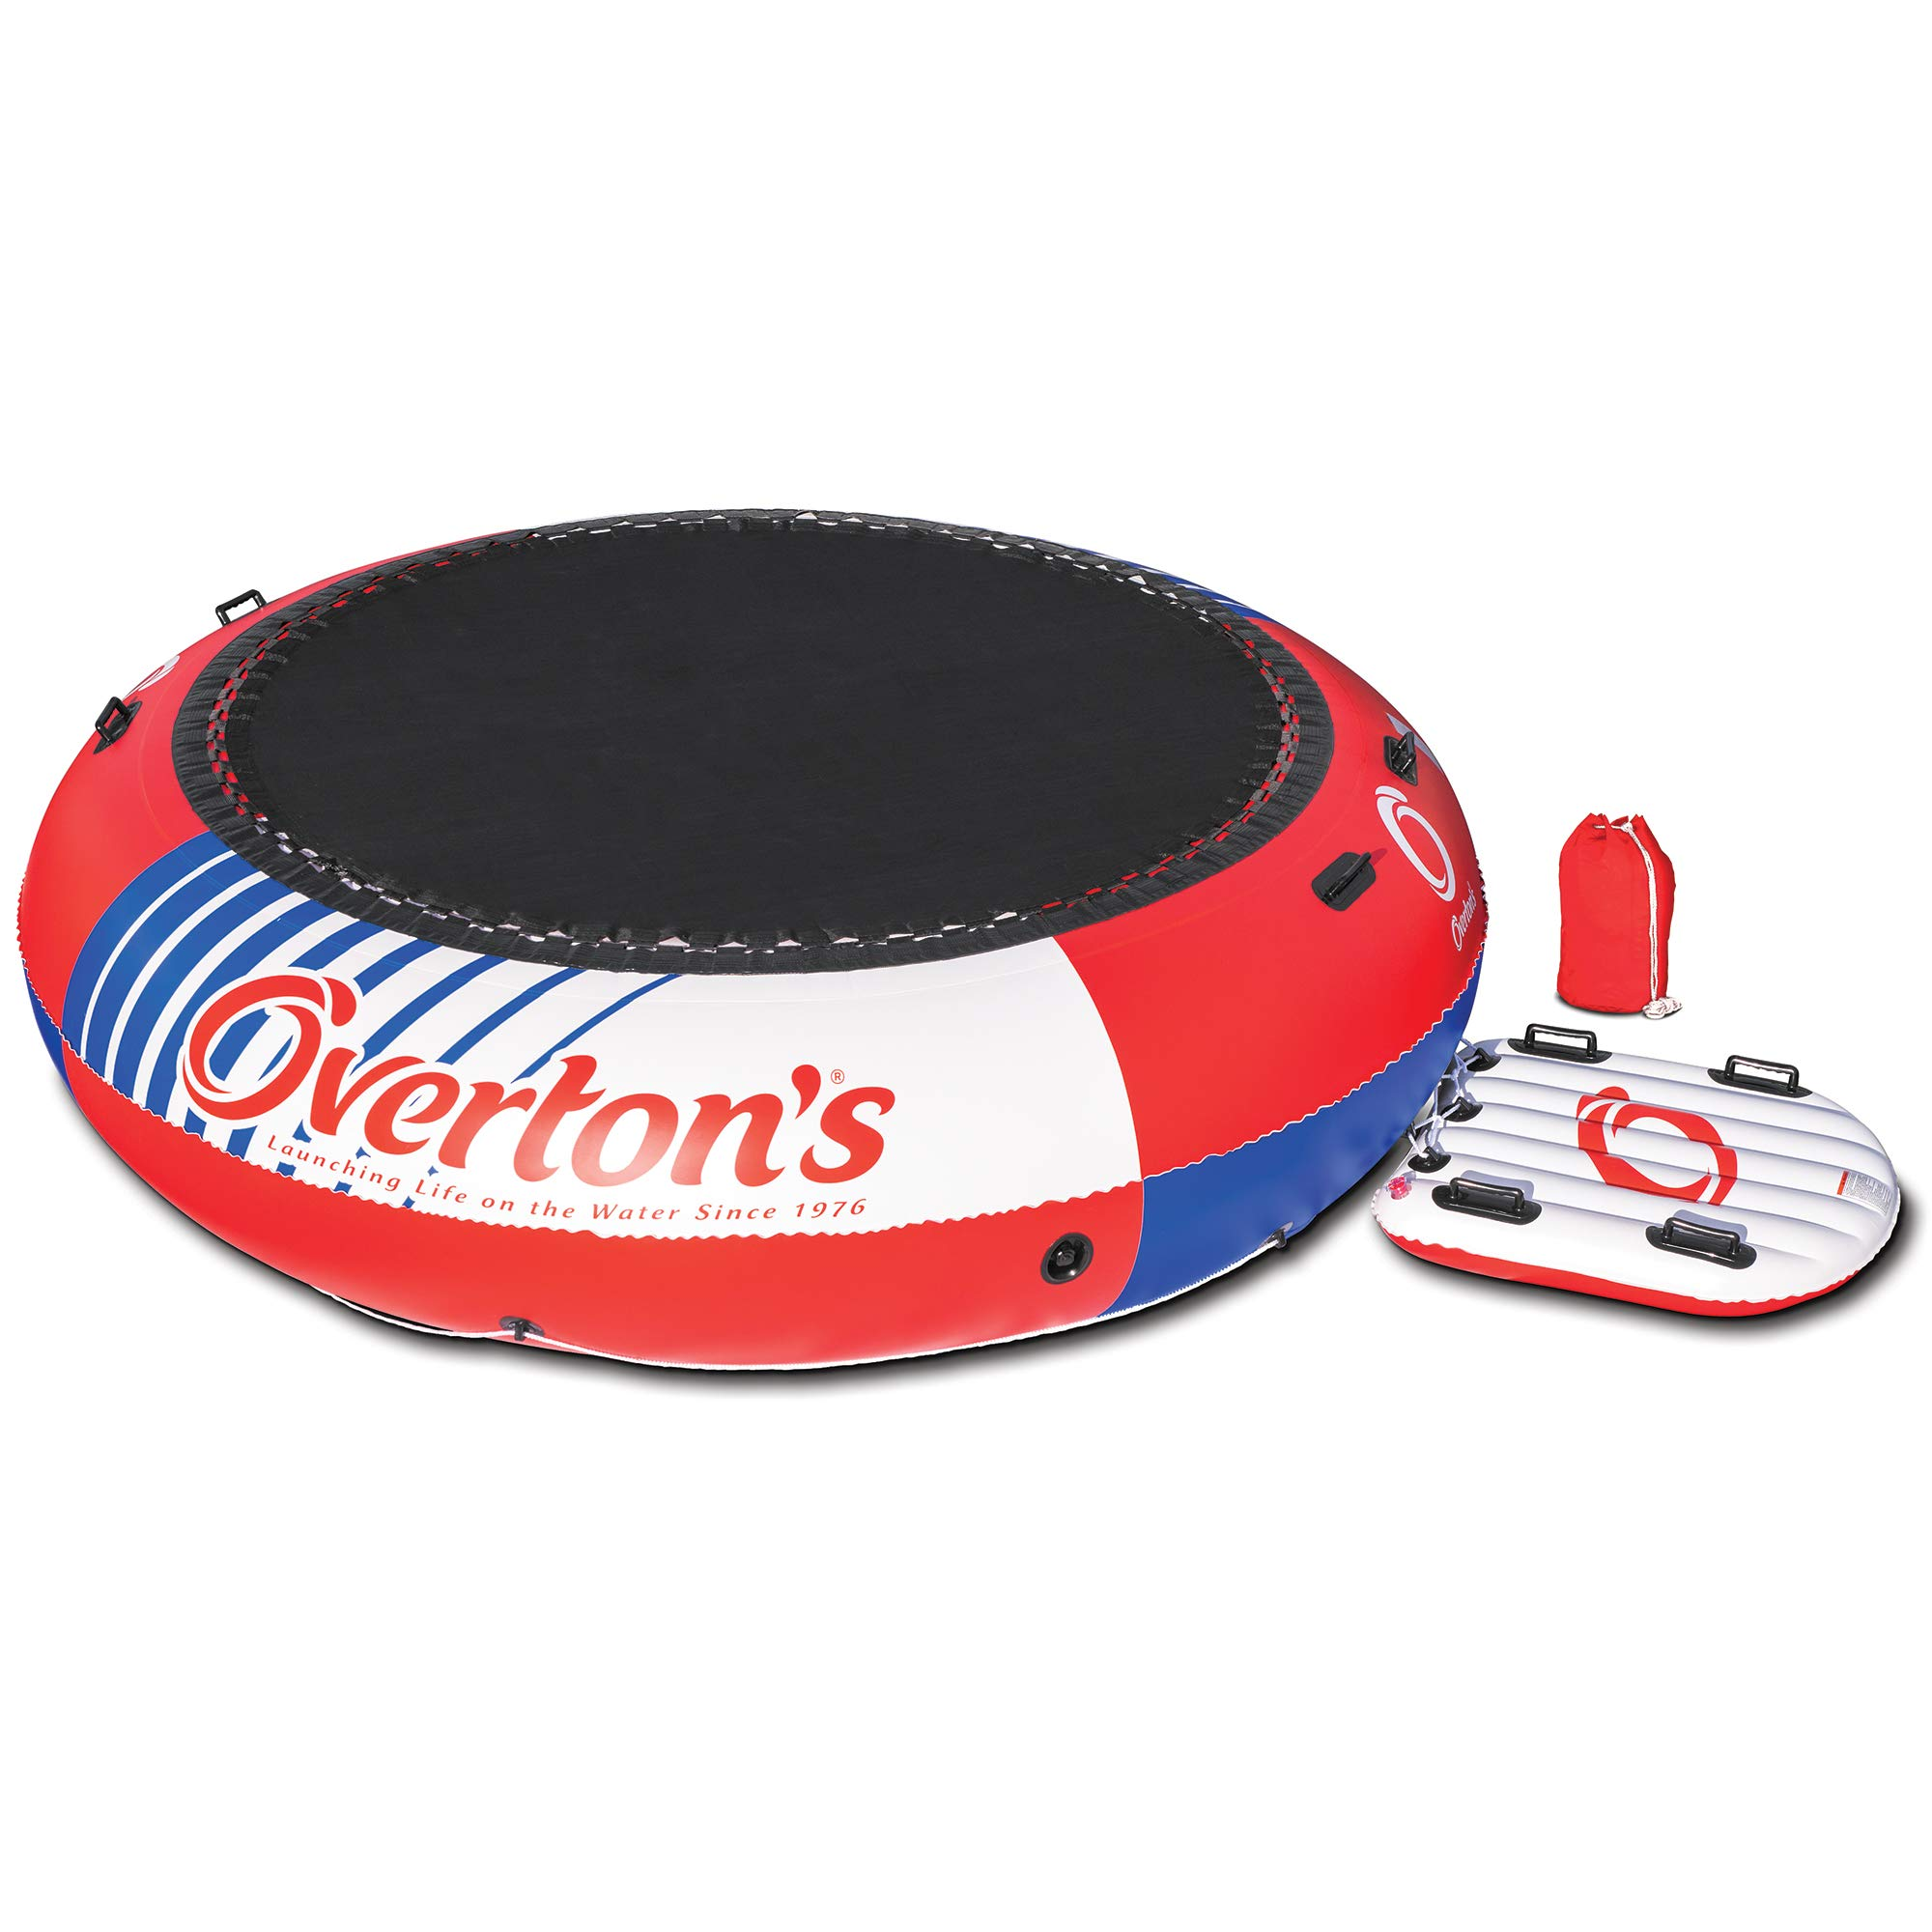 Overton's 10' Super Bouncer by Overton's